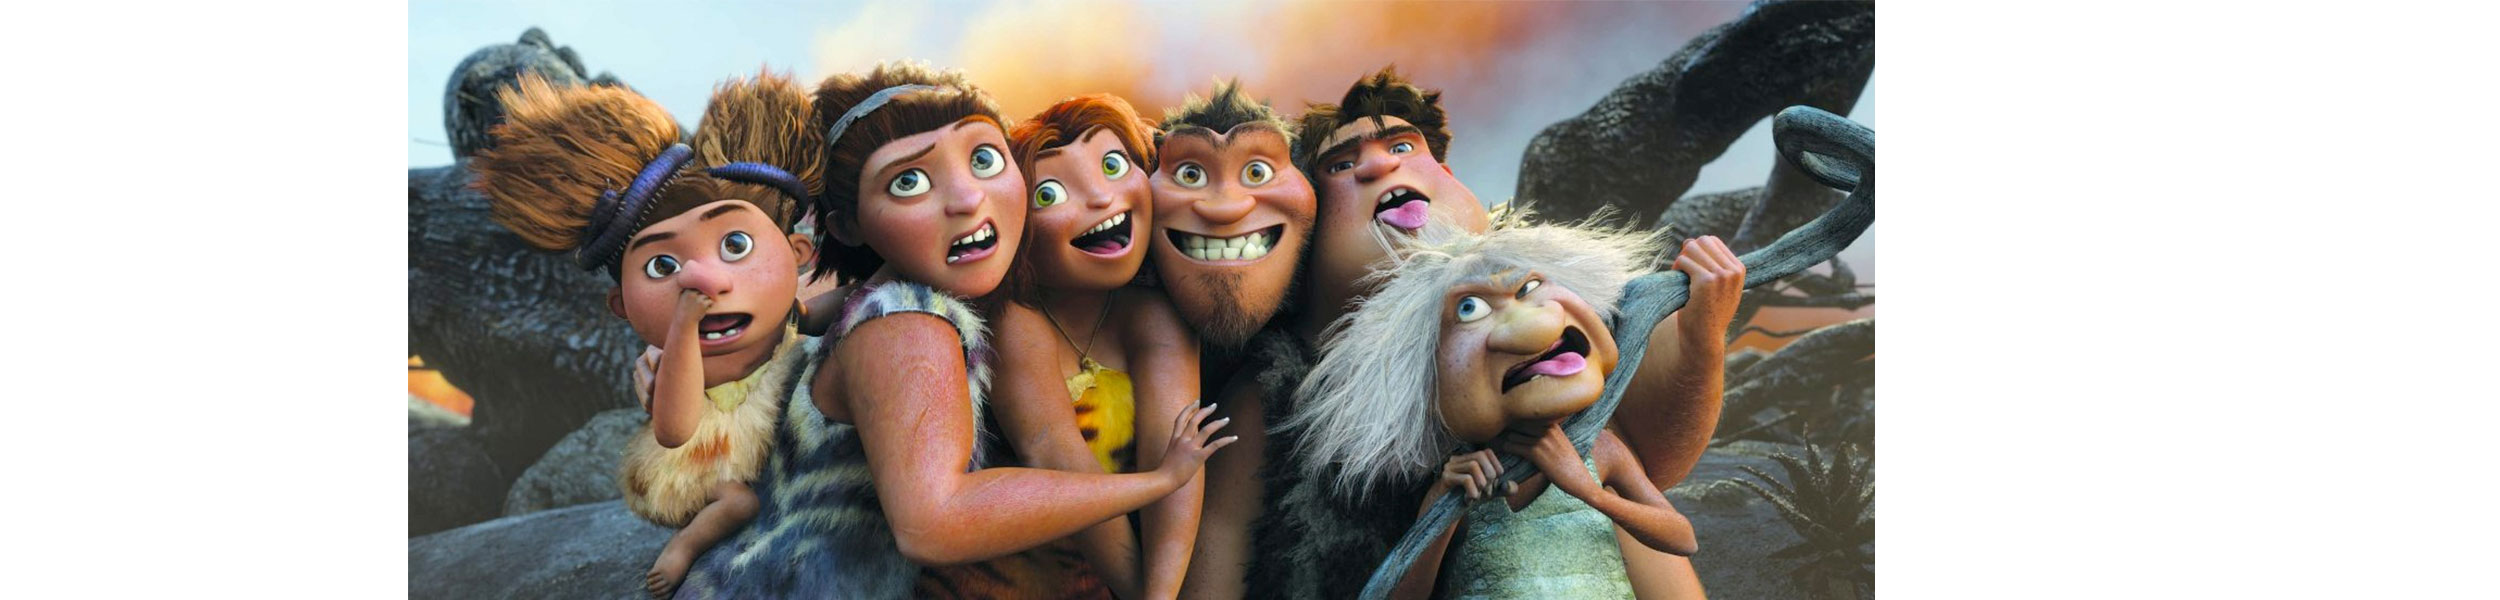 Outdoor Movies at Redwood Acres Fairgrounds – The Croods: A New Age